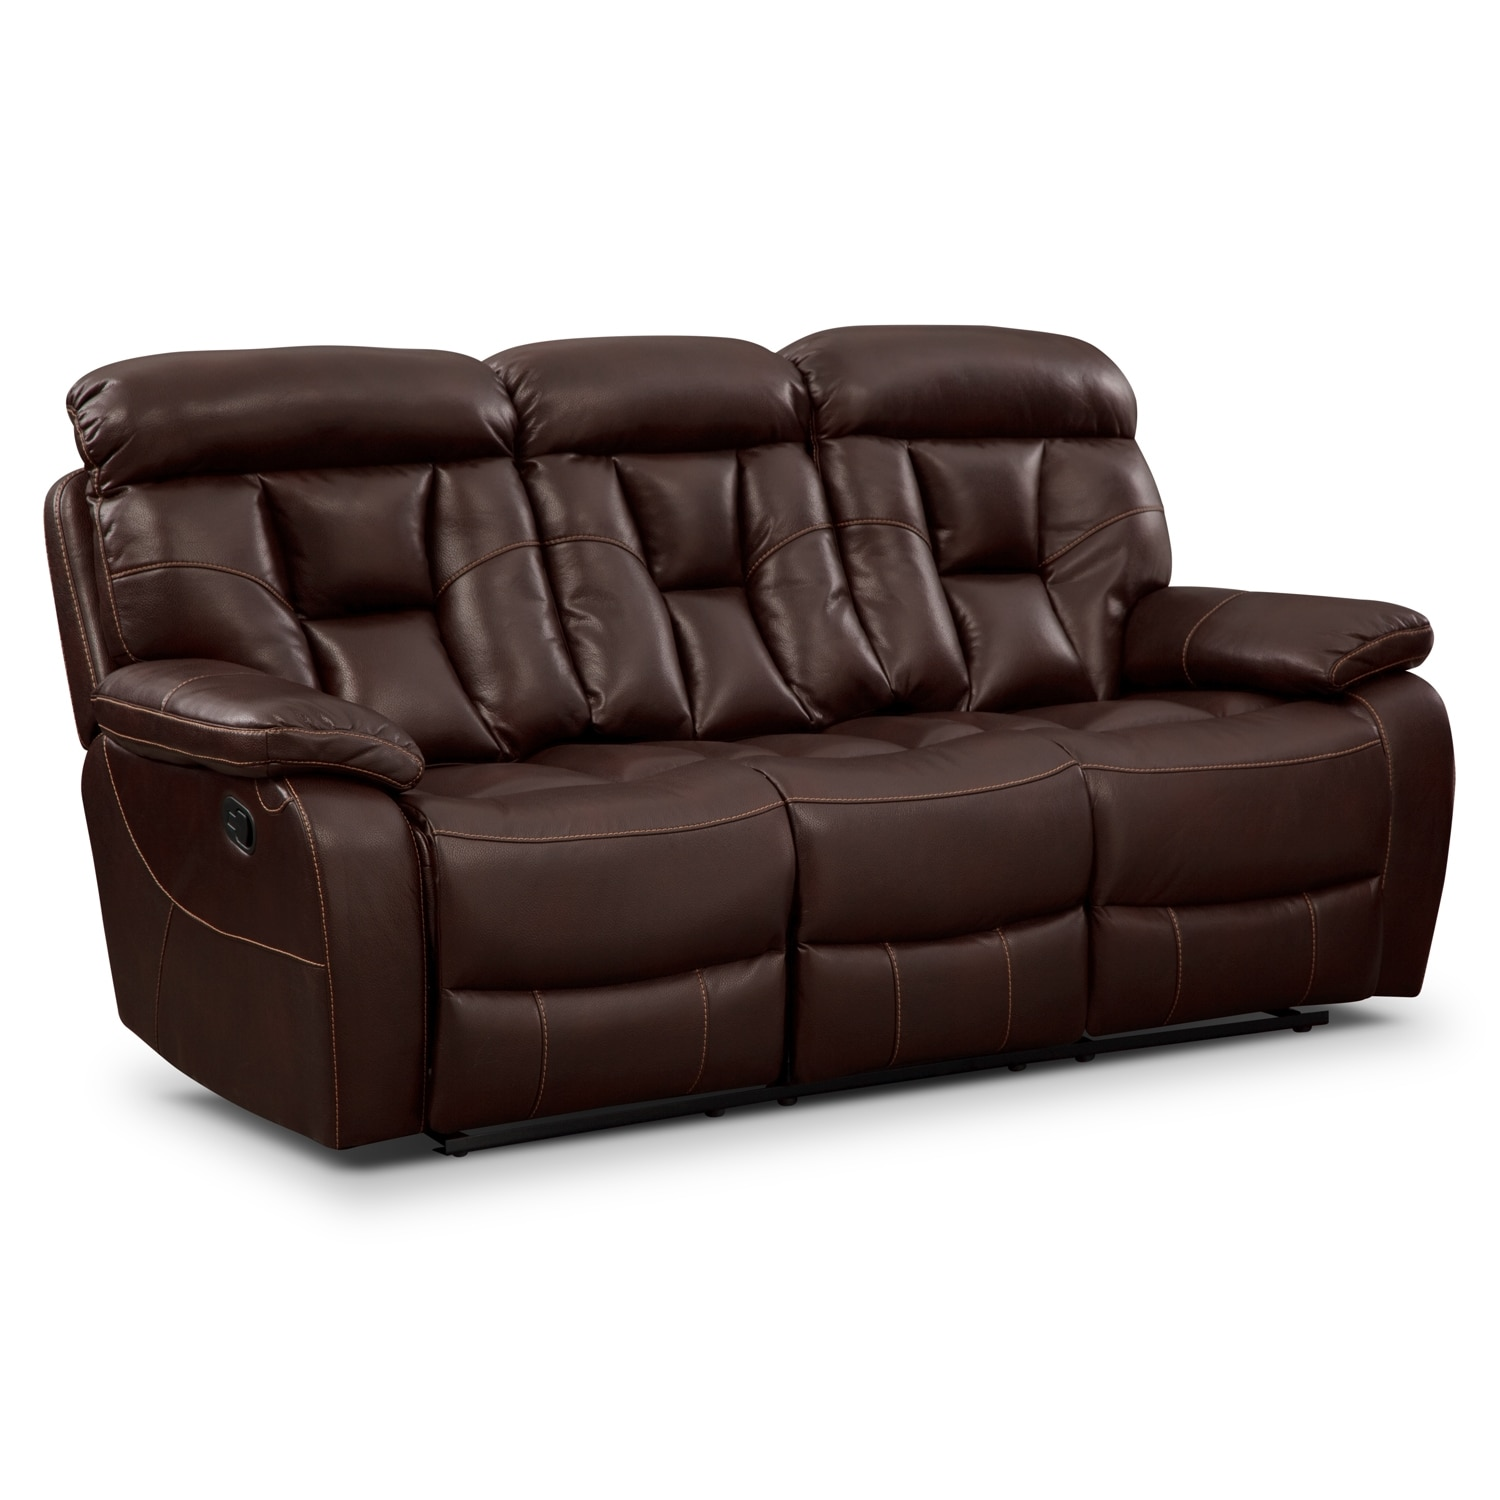 Dakota reclining sofa american signature furniture Loveseats with console